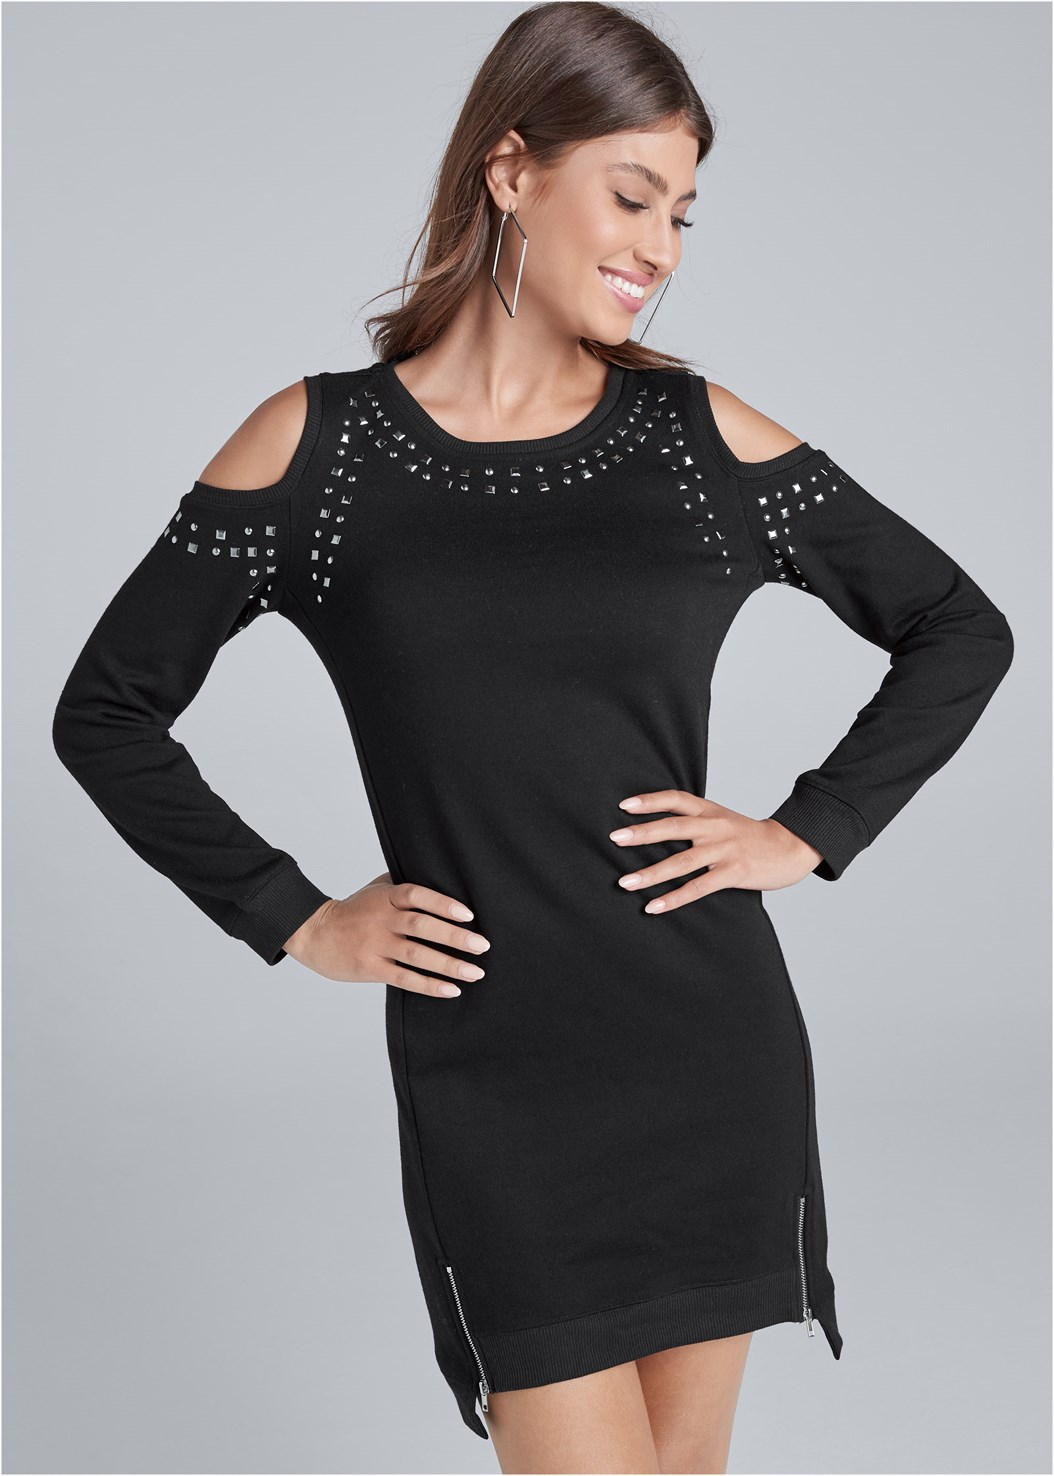 Studded Cold Shoulder Lounge Dress,Peep Toe Booties,Square Hoop Earrings